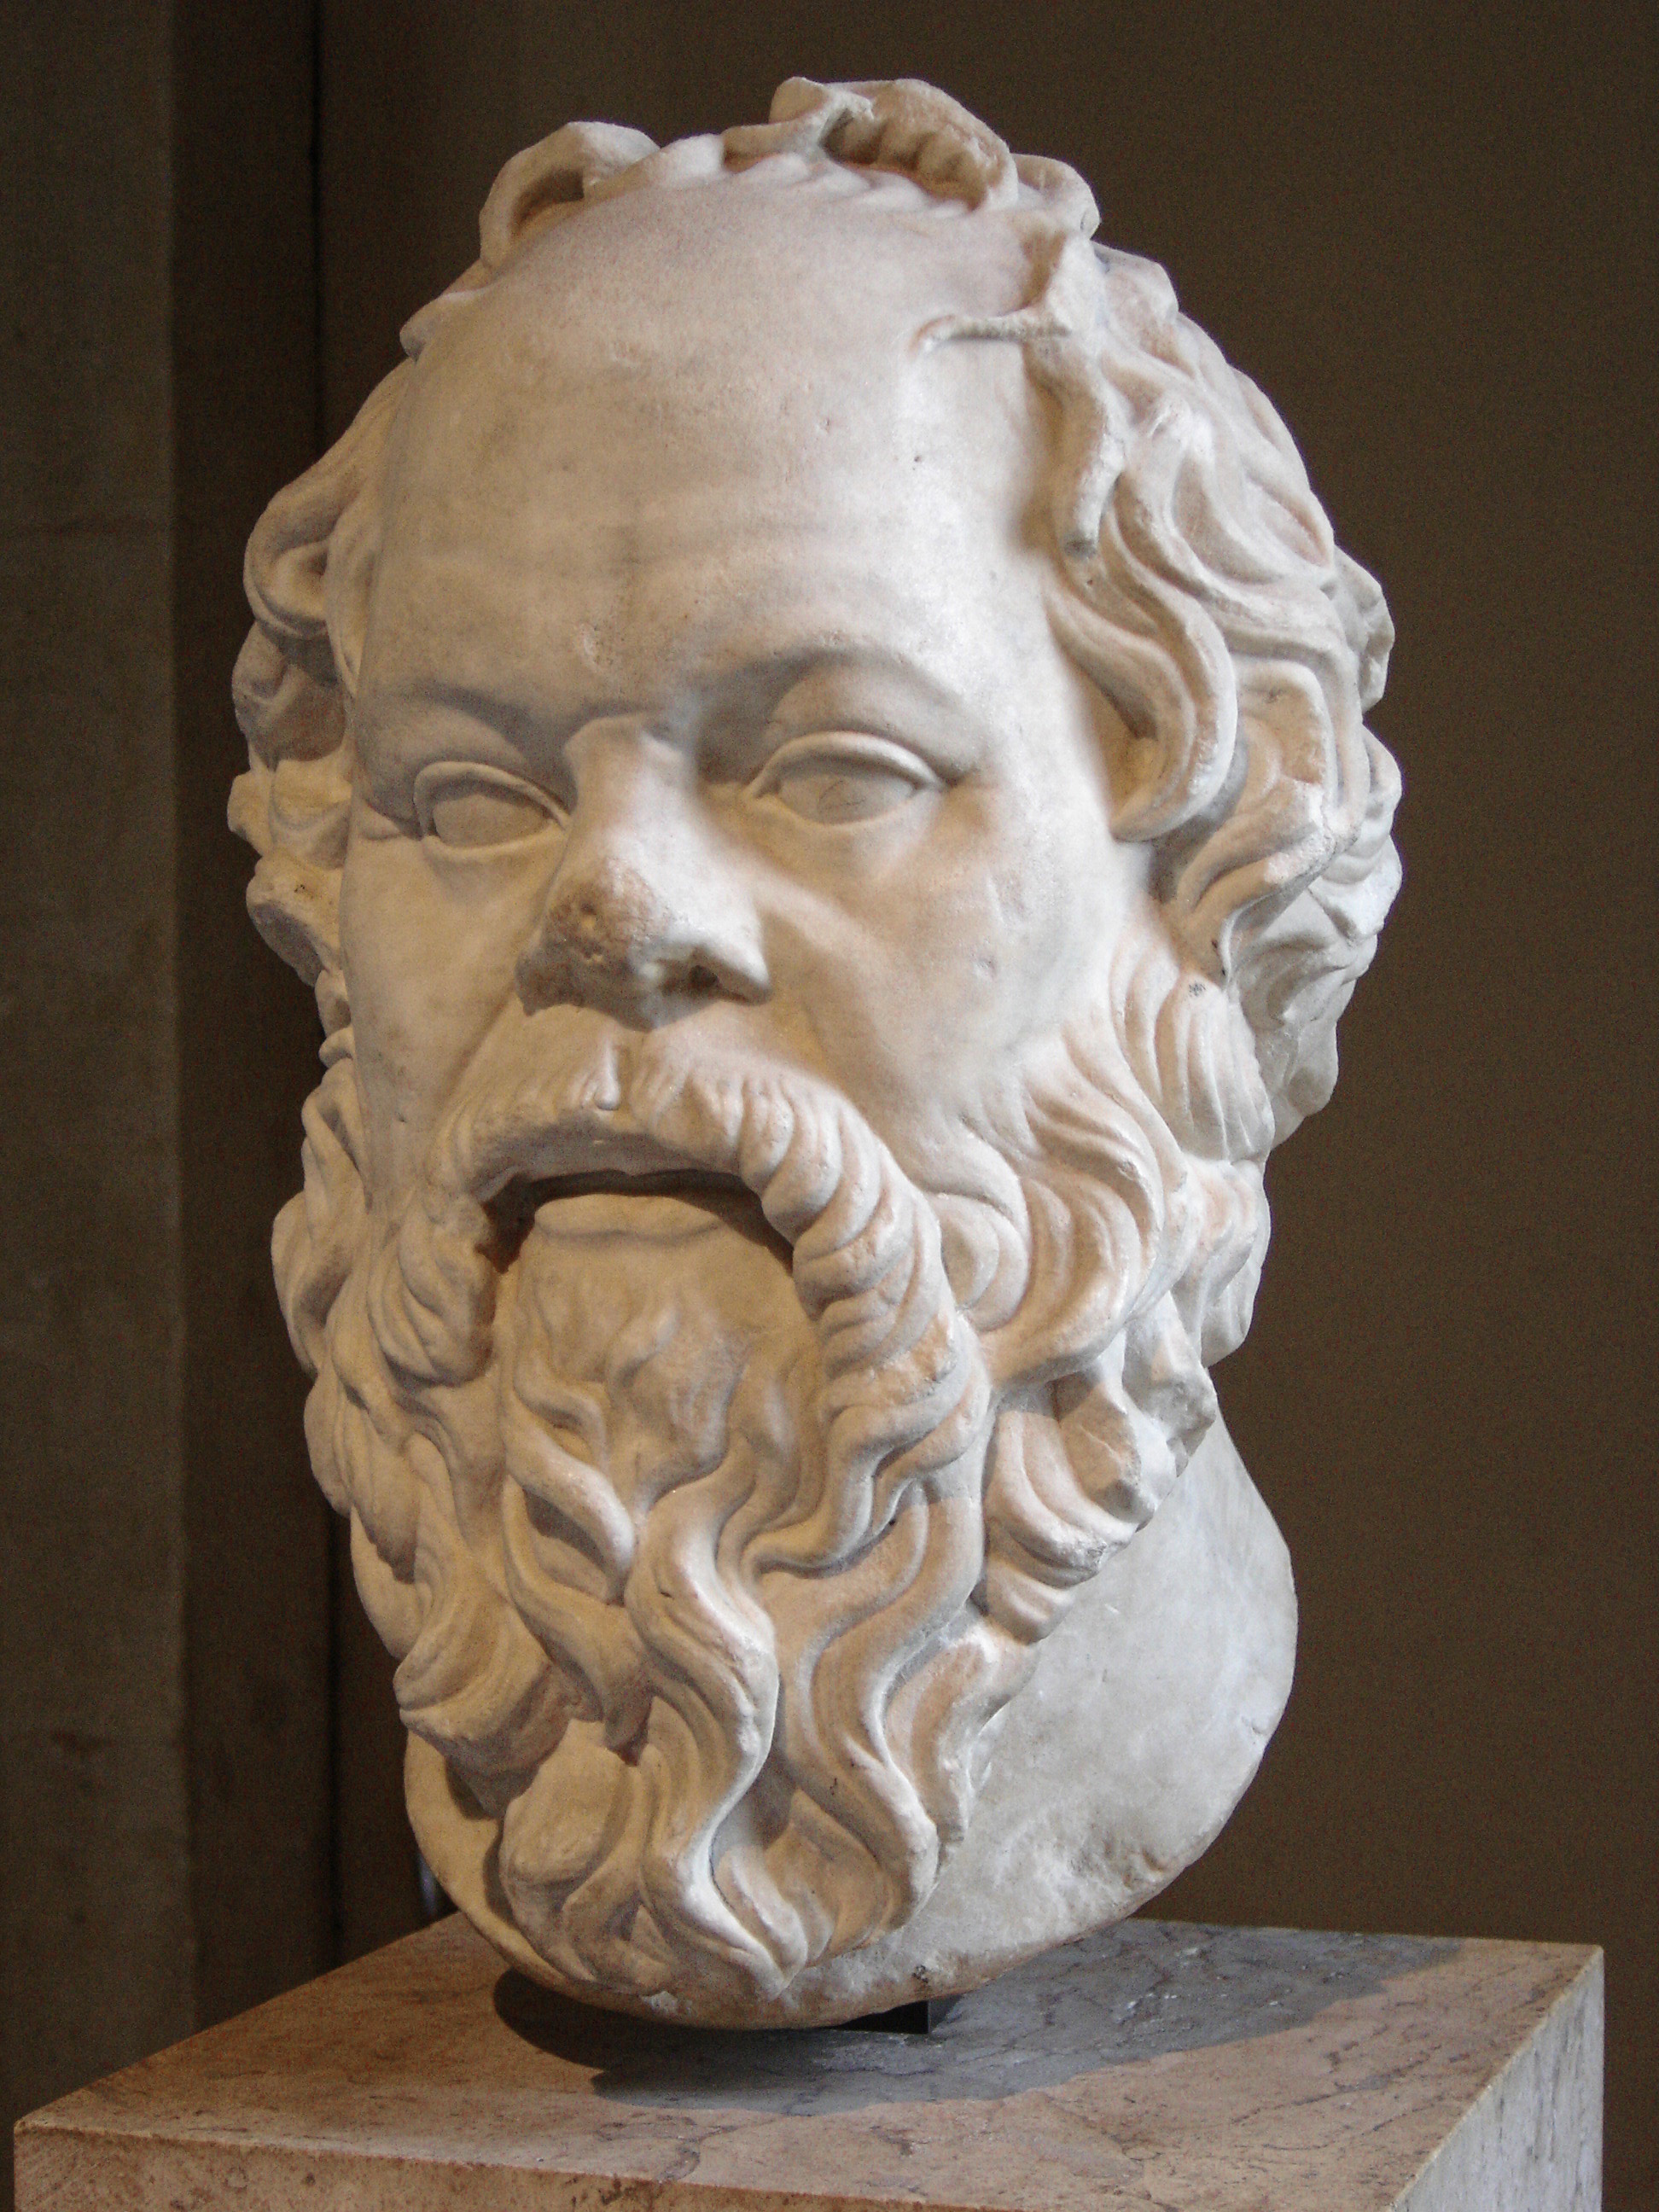 Portrait of Socrates. Marble, Roman artwork (1st century), perhaps a copy of a lost bronze statue made by Lysippos, provided by Wikimedia Commons.